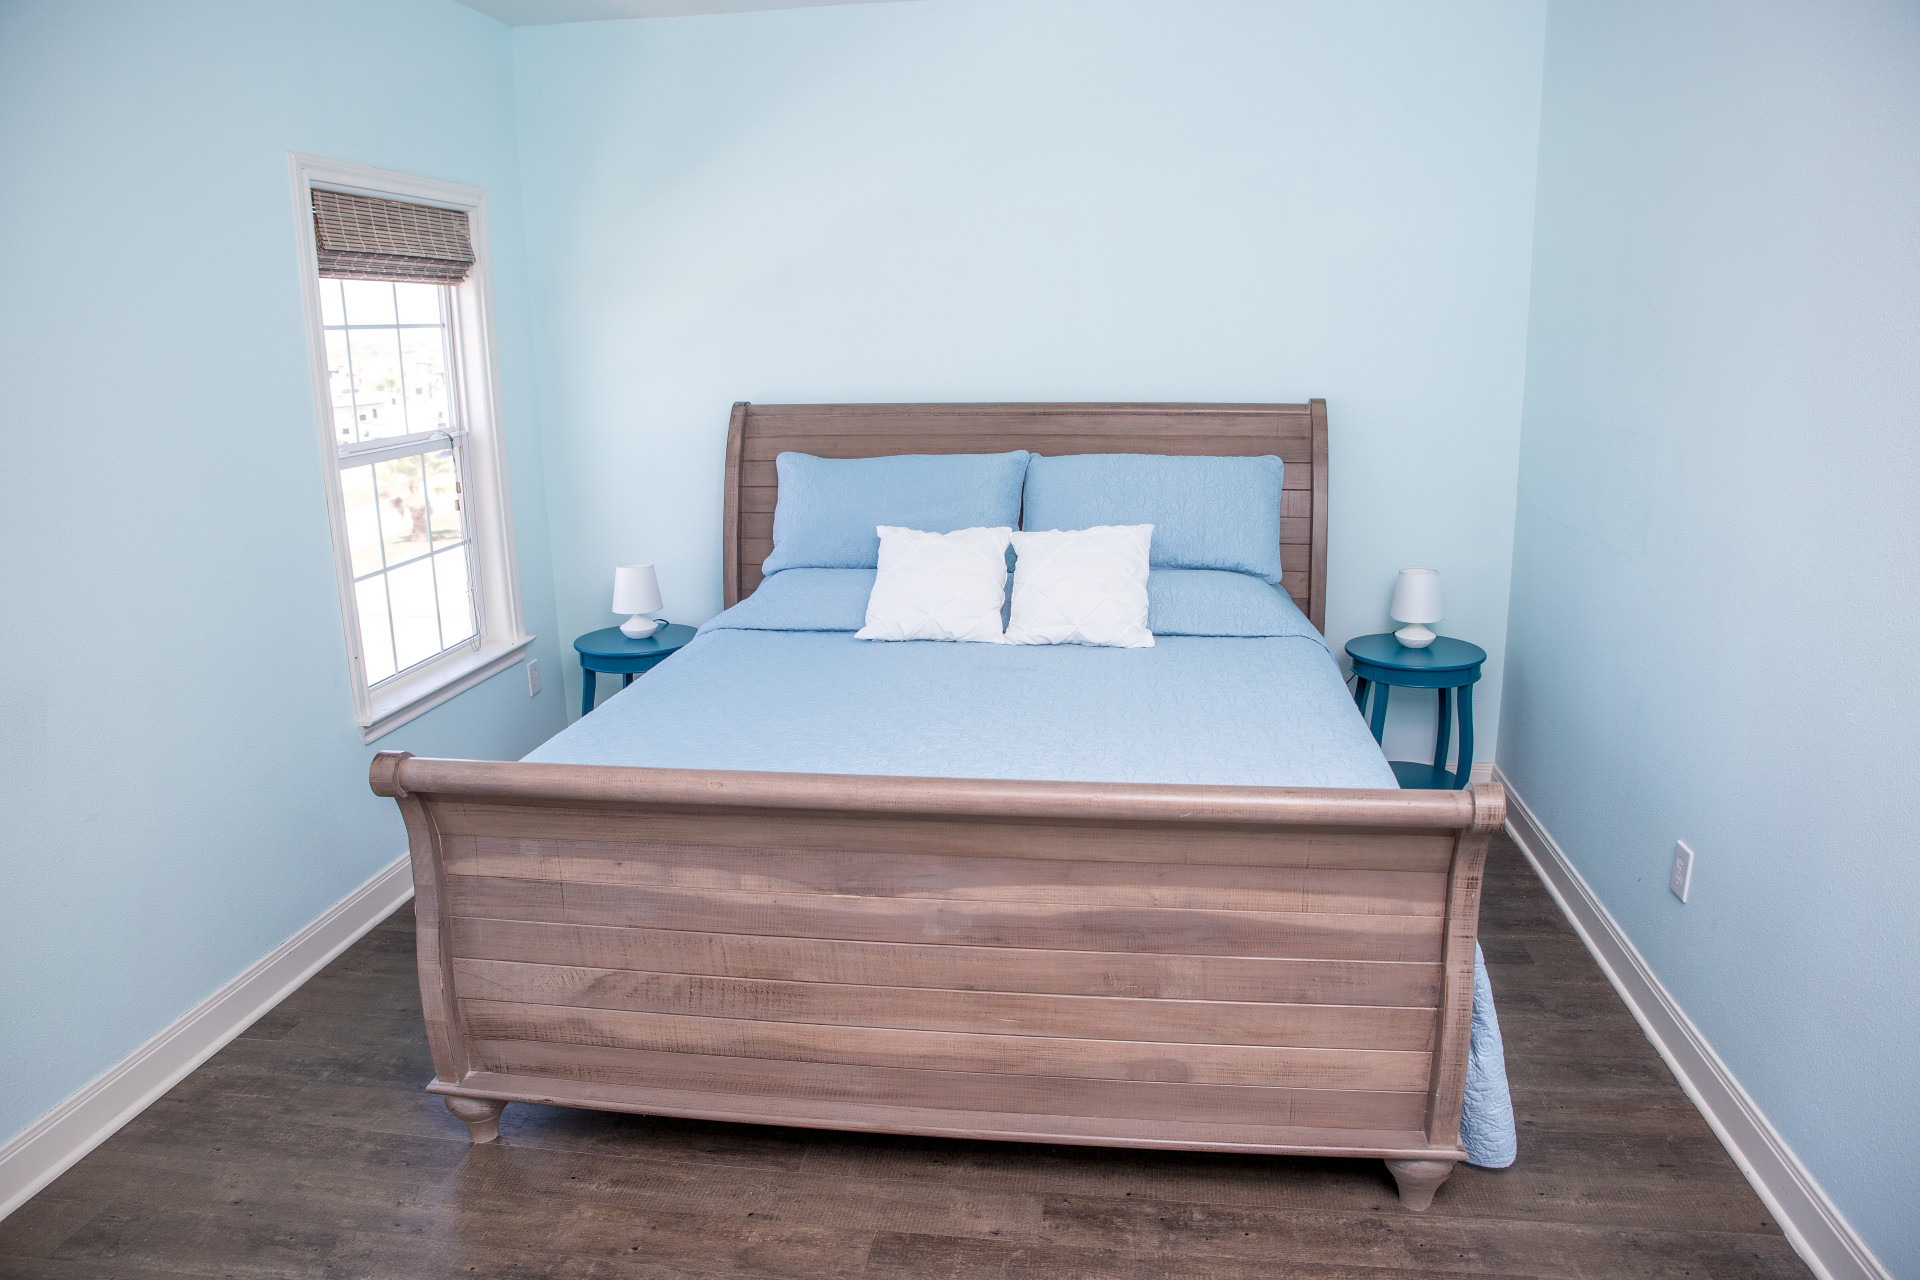 Into the Blue vacation house master bedroom in Galveston RV park